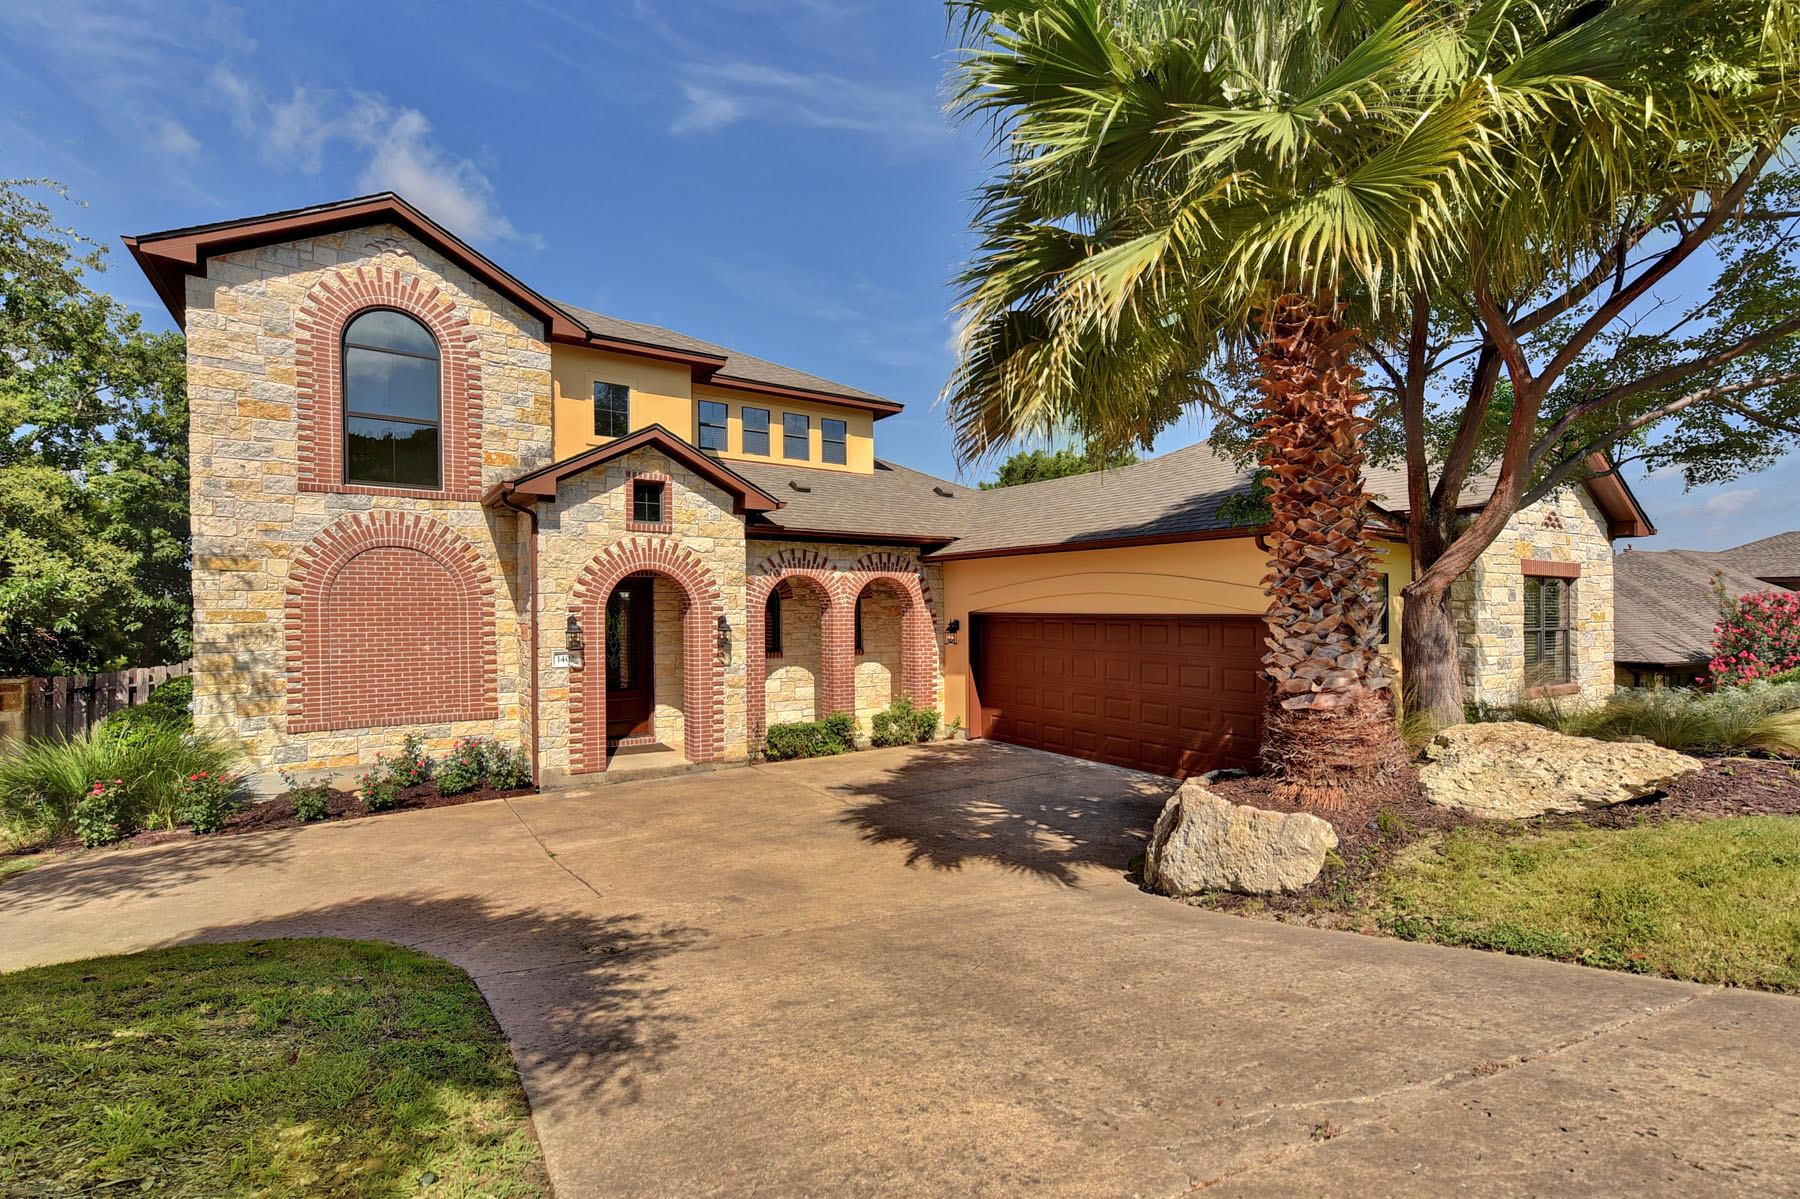 Casa Unifamiliar por un Venta en Great Location! Great Views! Great Price! 1402 Sledge Dr Lakeway, Texas 78734 Estados Unidos